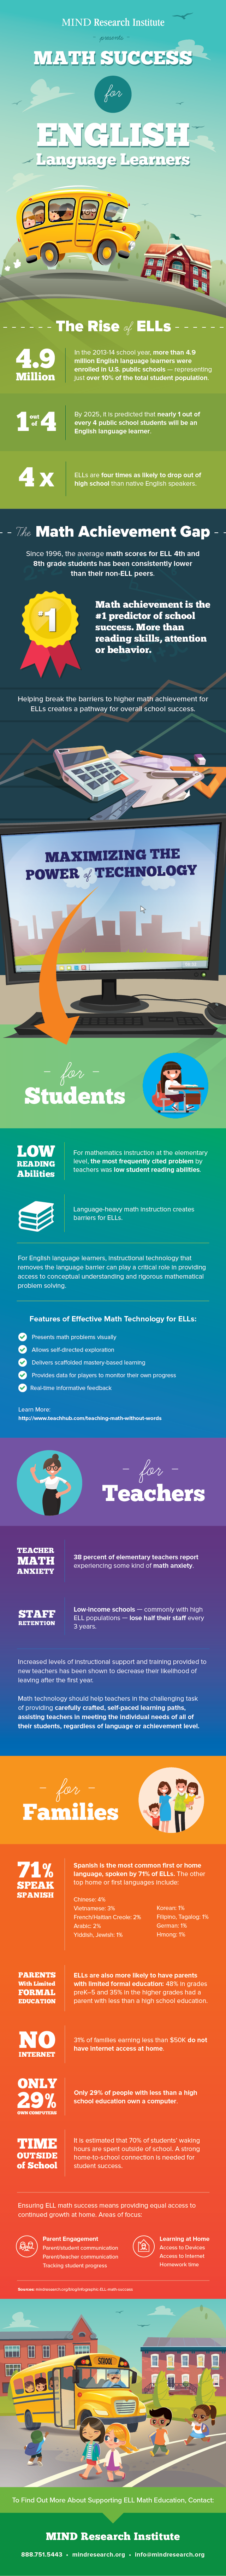 English Language Learners Infographic